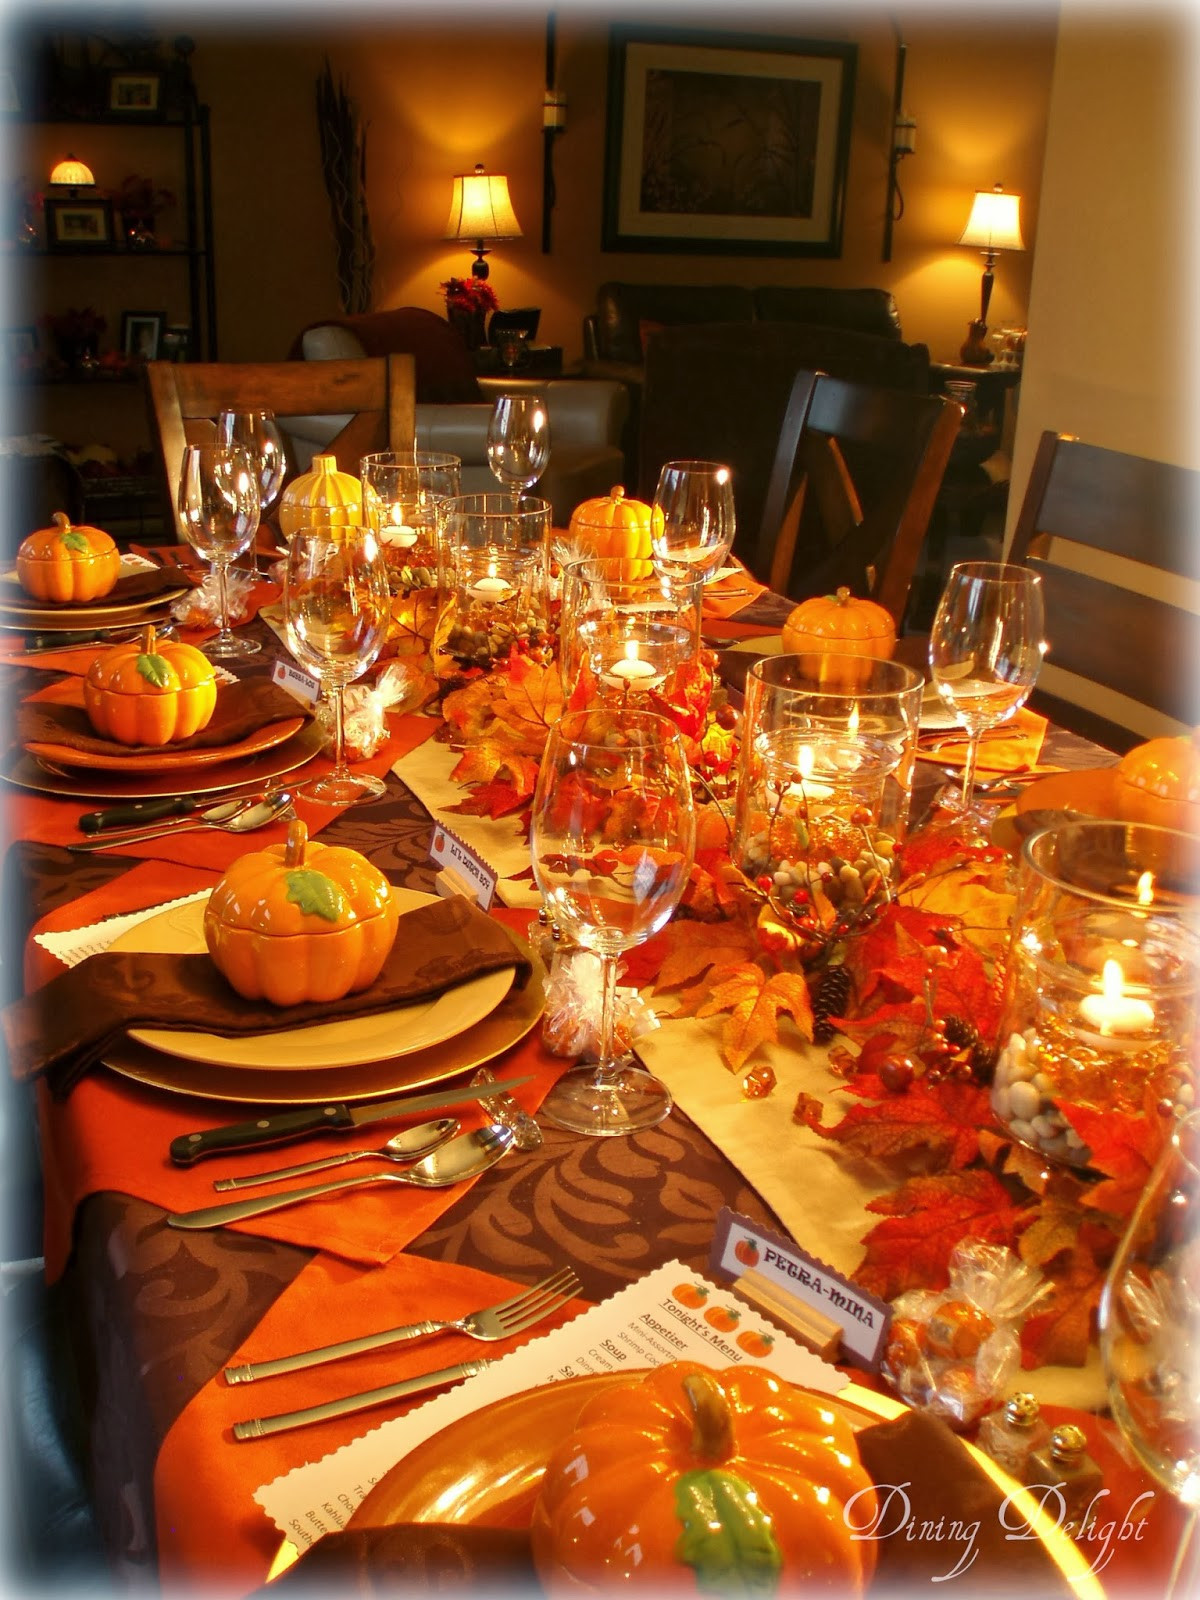 Thanksgiving Dinner Table Decorations  Dining Delight Fall Dinner Party for Ten